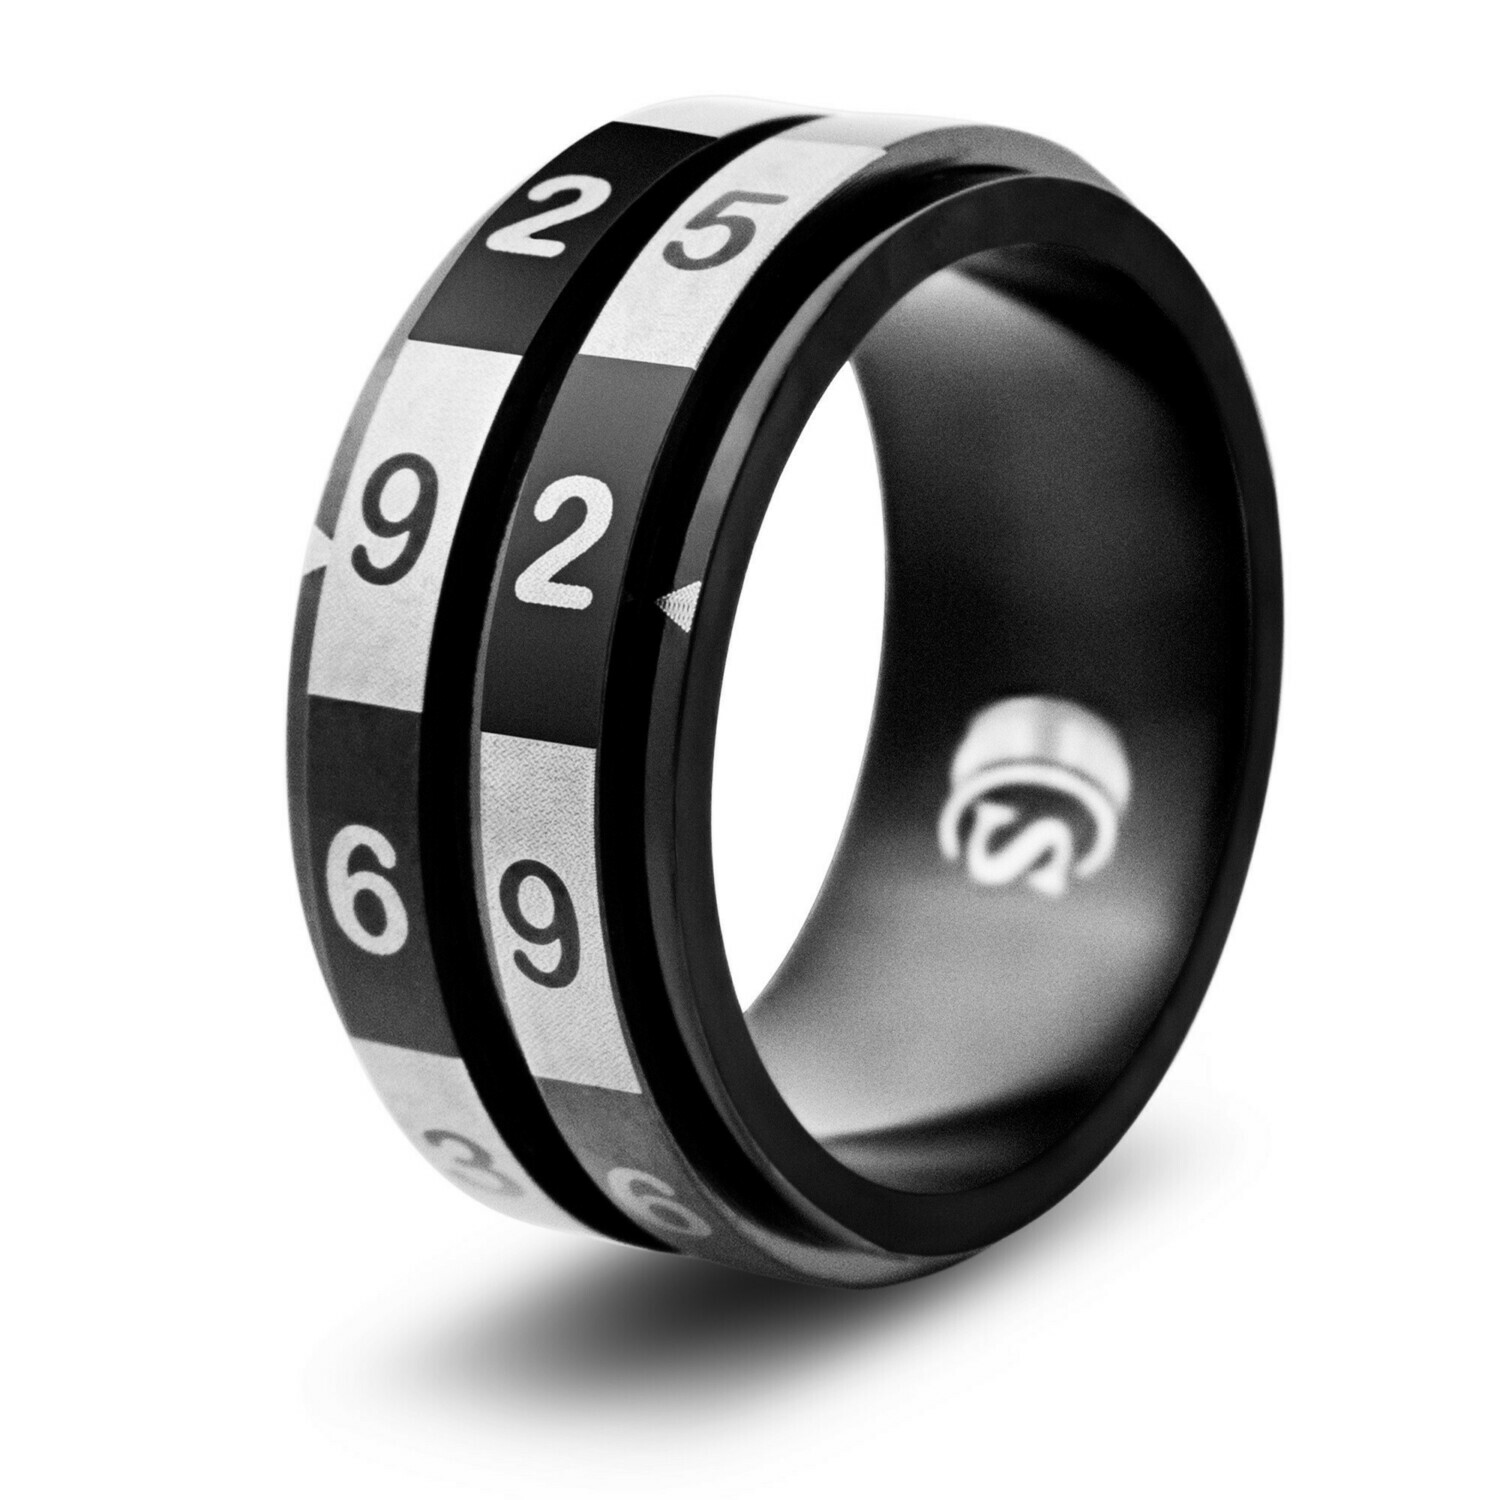 100-sided (2d10, d100) Dice Random Number Spinner Ring 1-100 Number Selector Generator